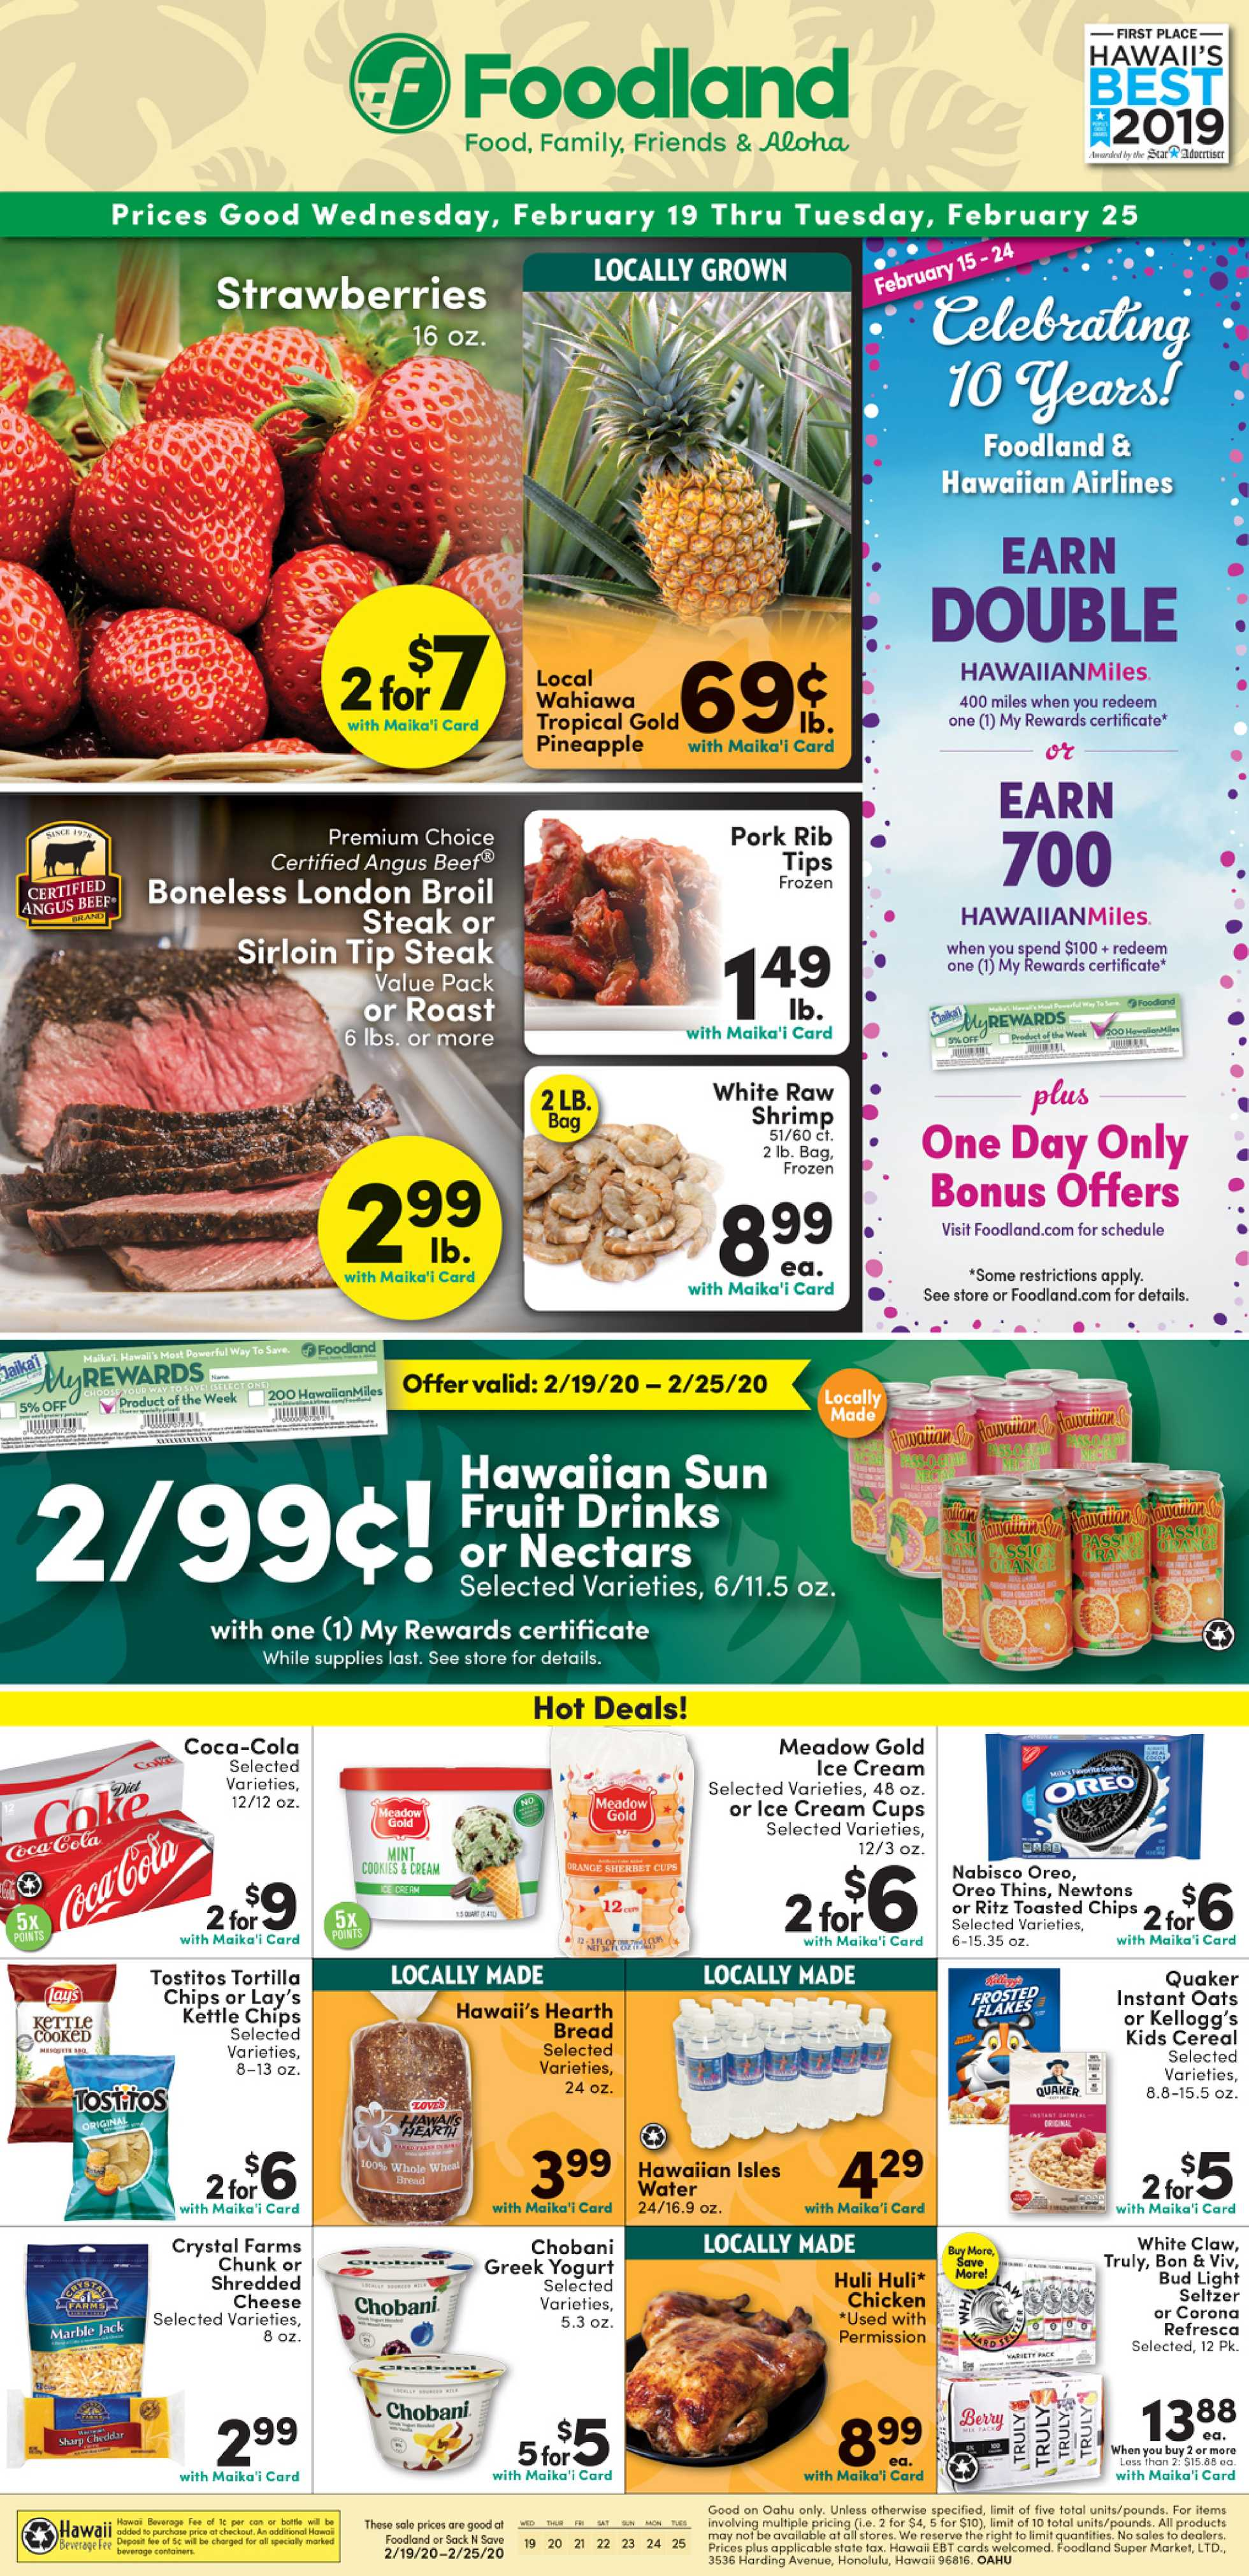 Foodland - promo starting from 02/19/20 to 02/25/20 - page 1.